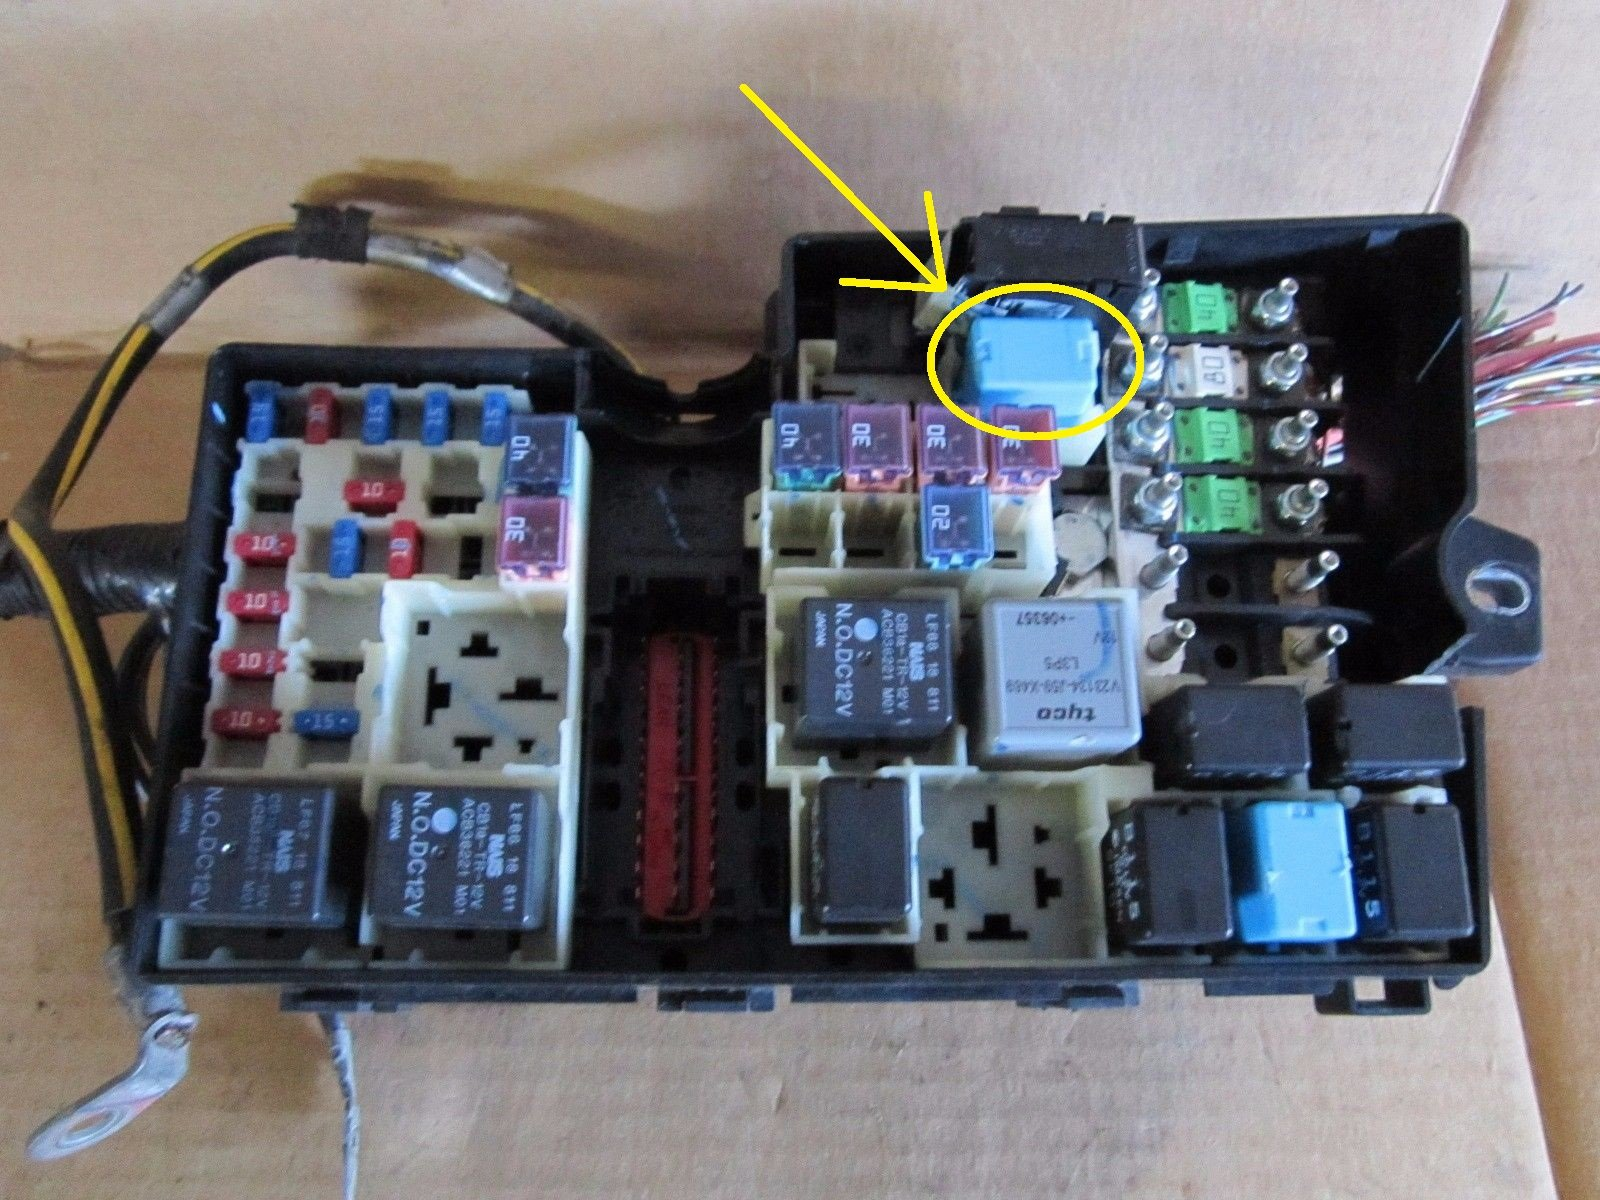 Mazda 3 Sp23 Fuse Box Real Wiring Diagram 2005 I Have A Strange Issue With My 07 Car